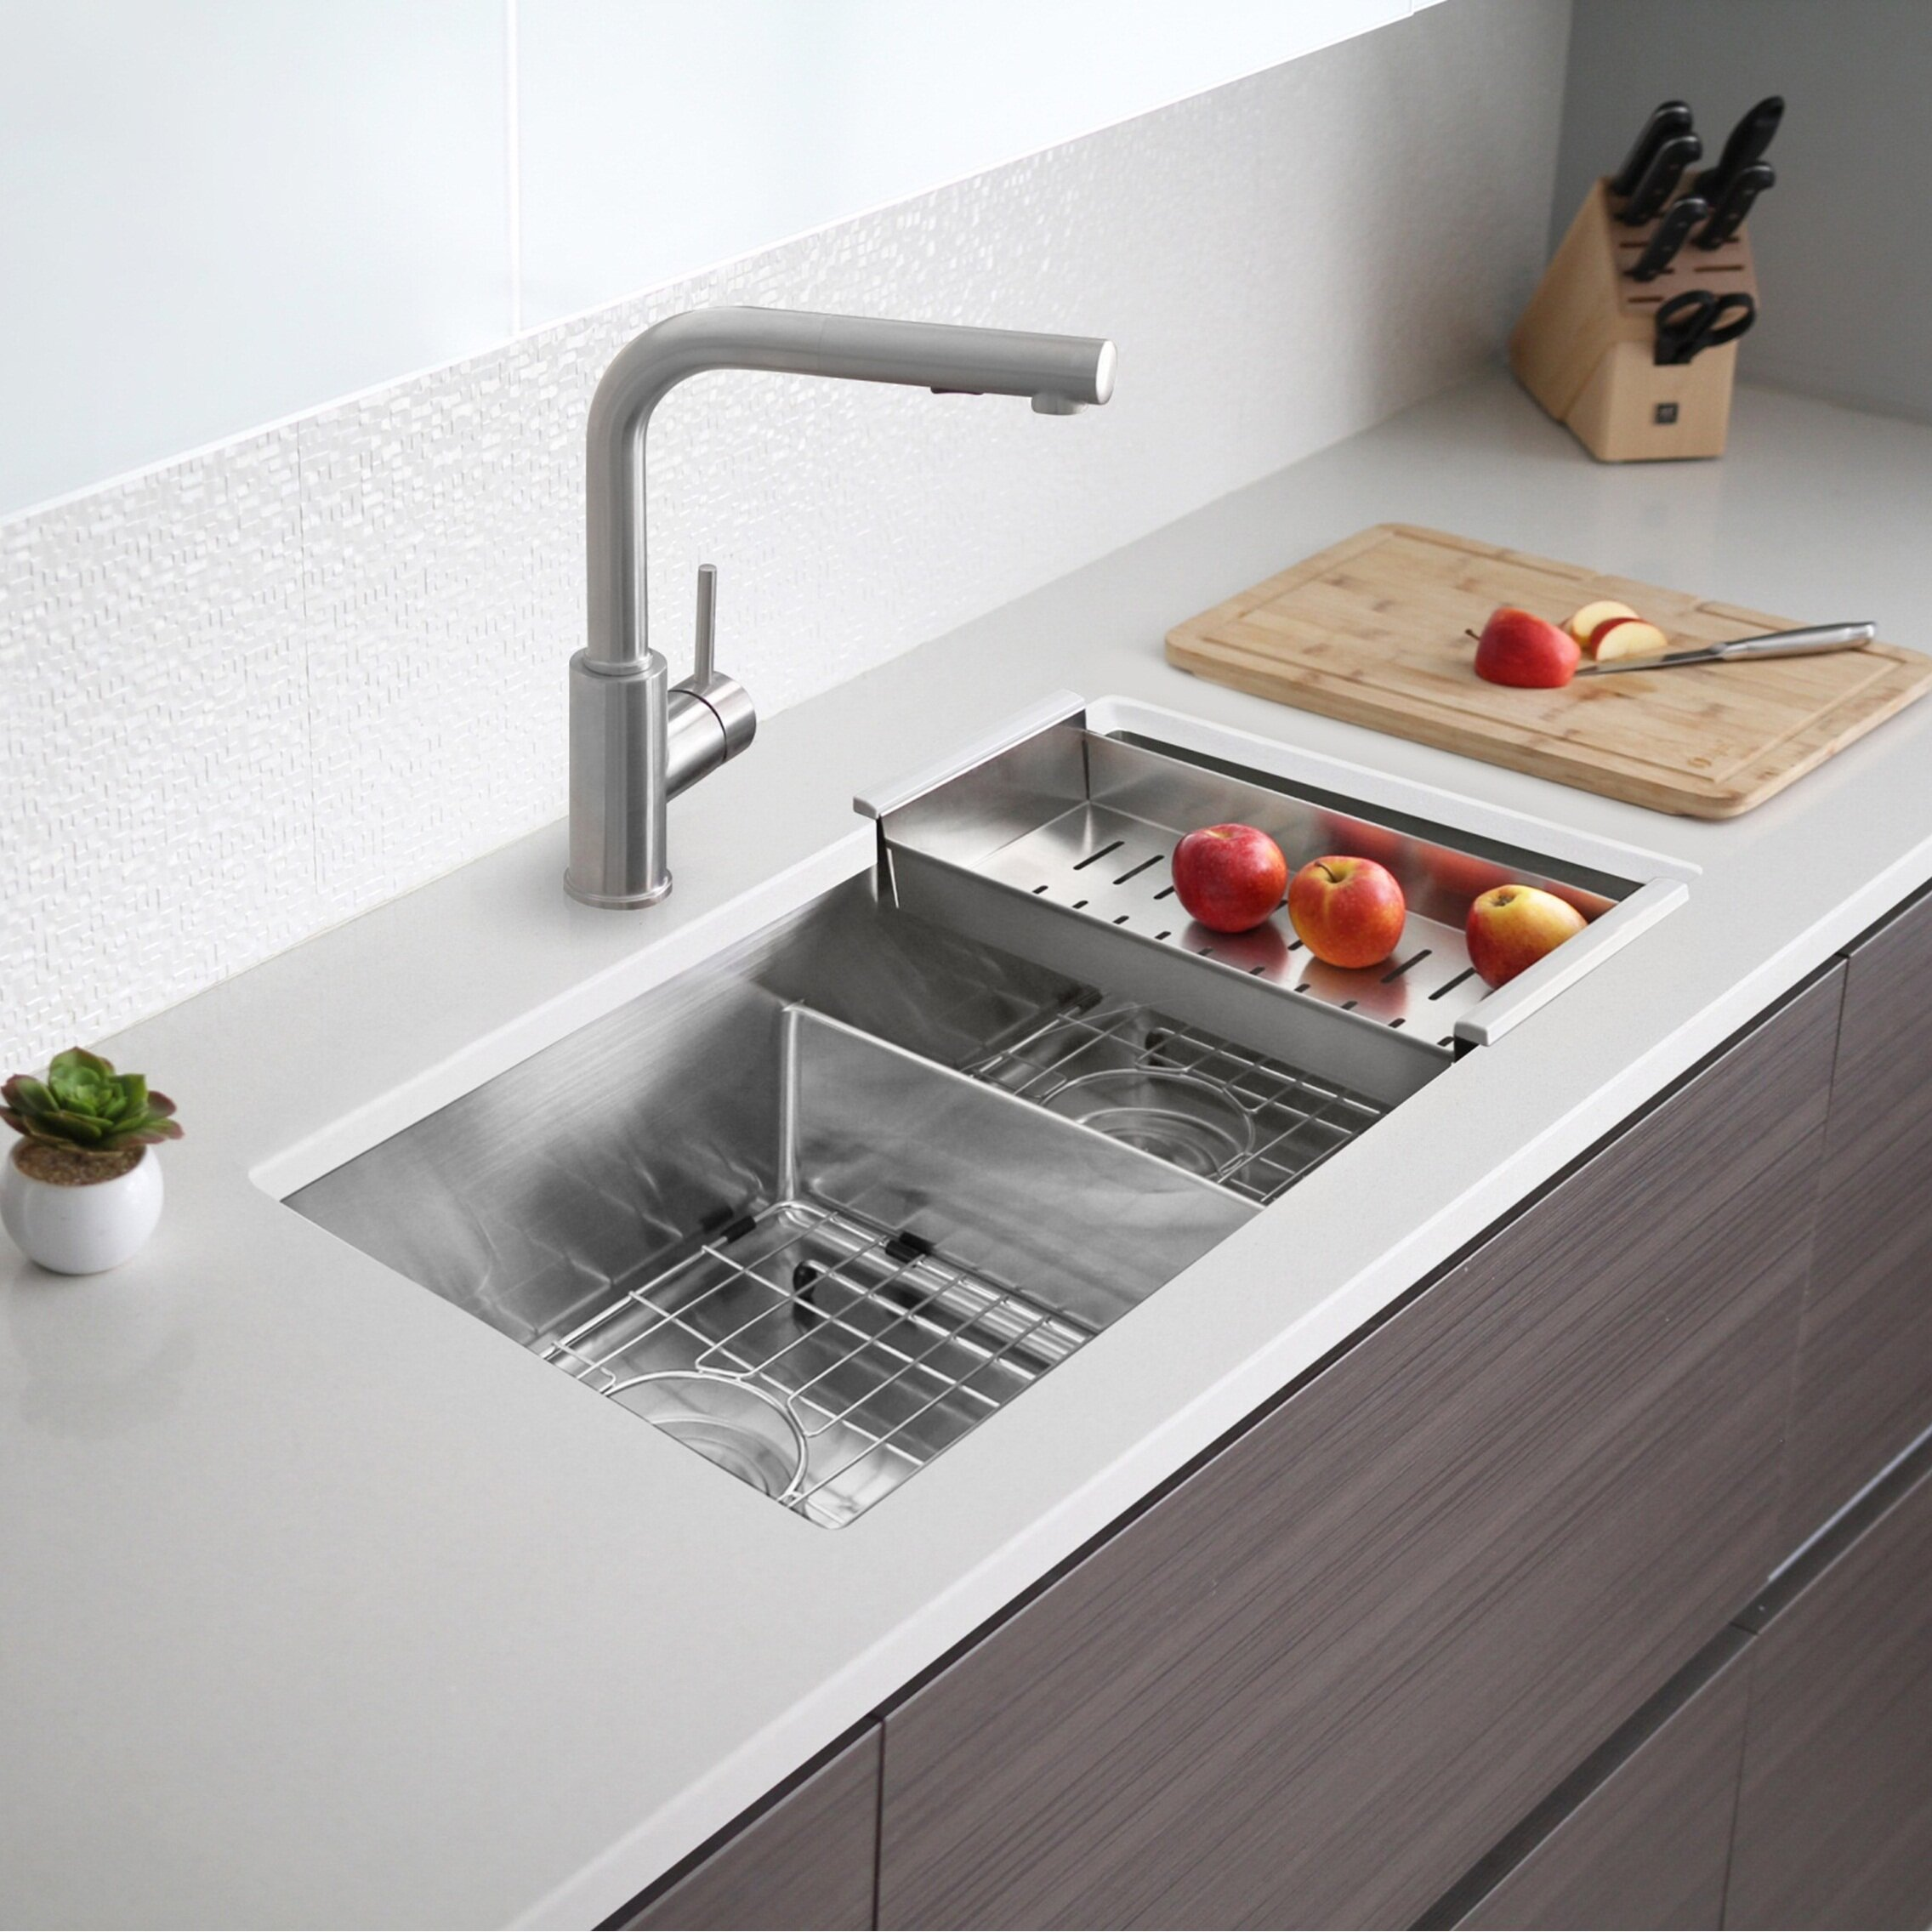 Stylish 32 L X 18 W Double Basin Undermount Kitchen Sink With Grids And Strainers Reviews Wayfair